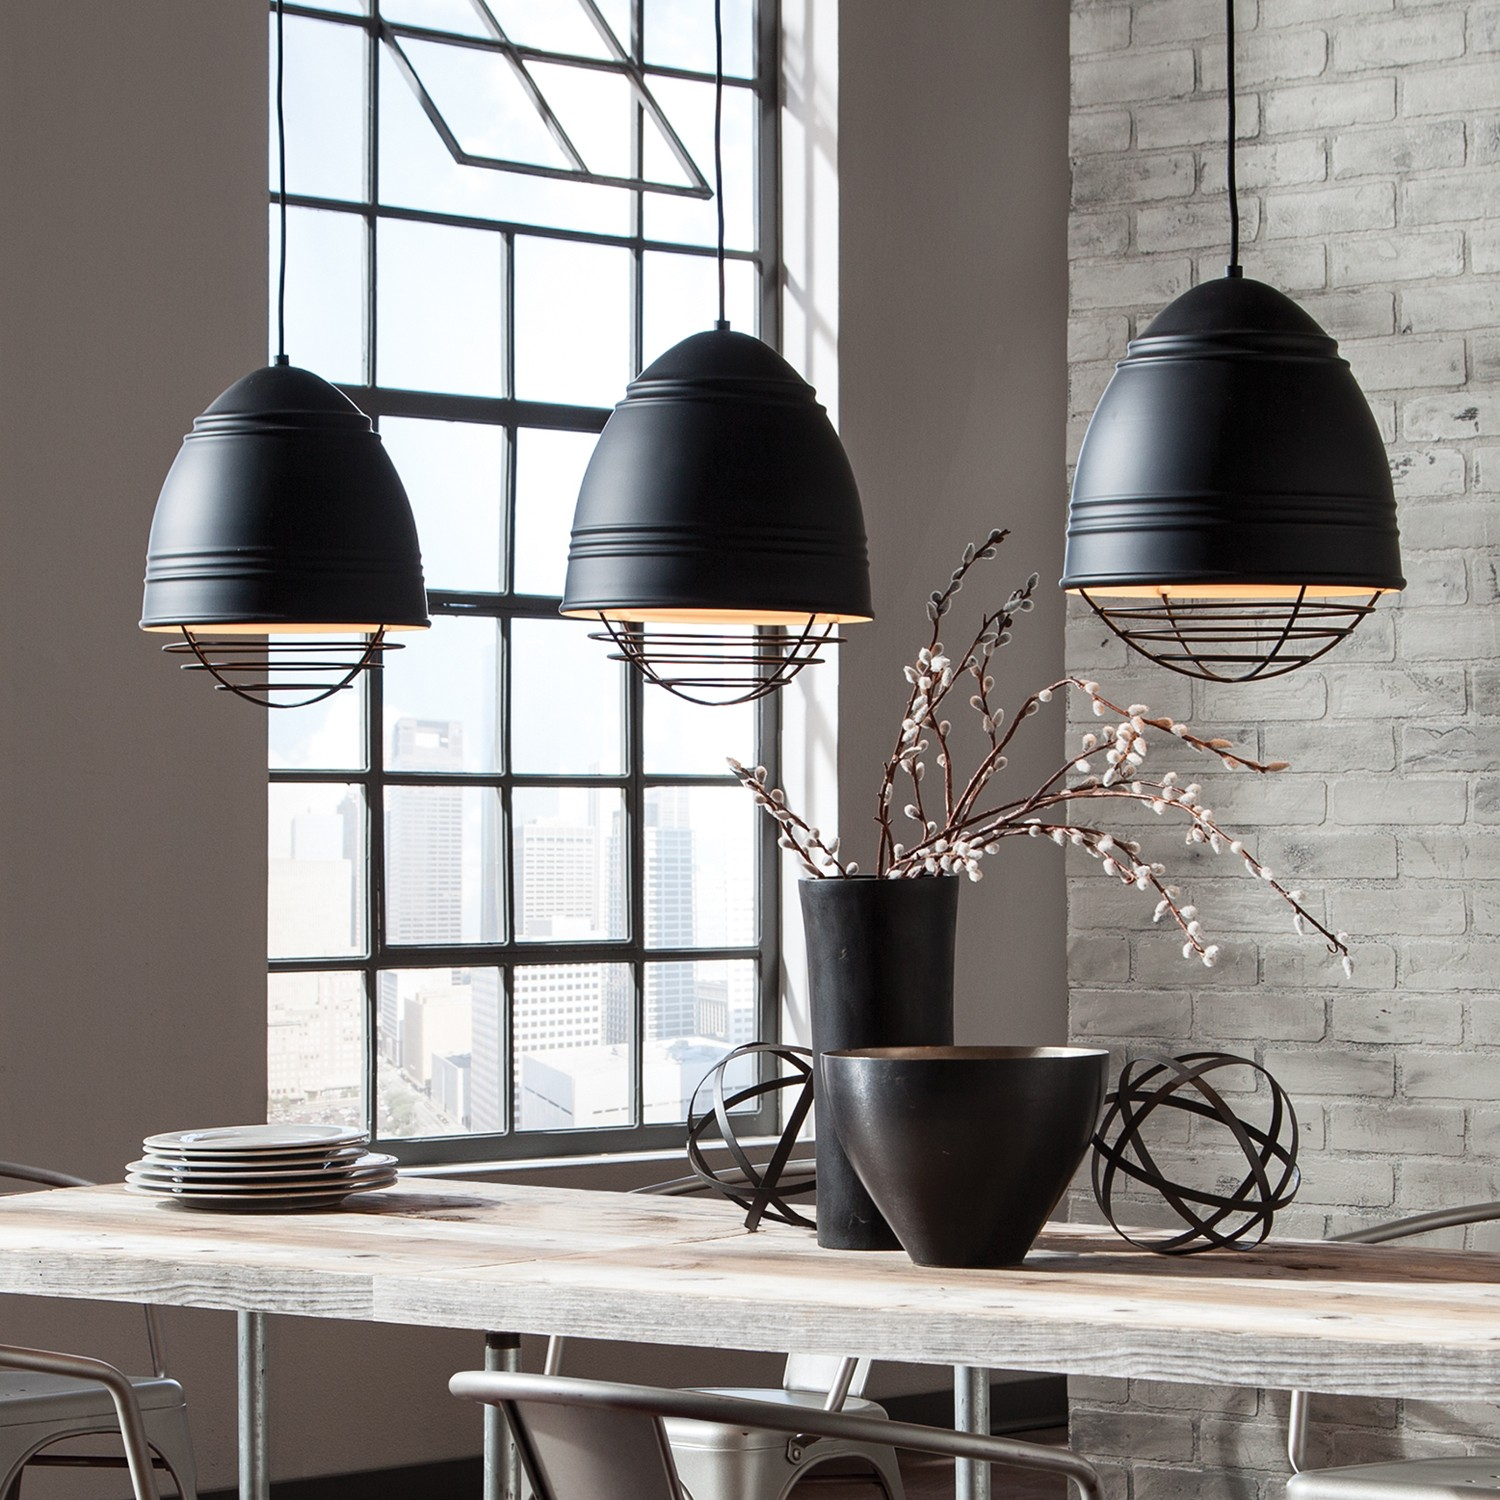 Pendant Lights For A Kitchen Island